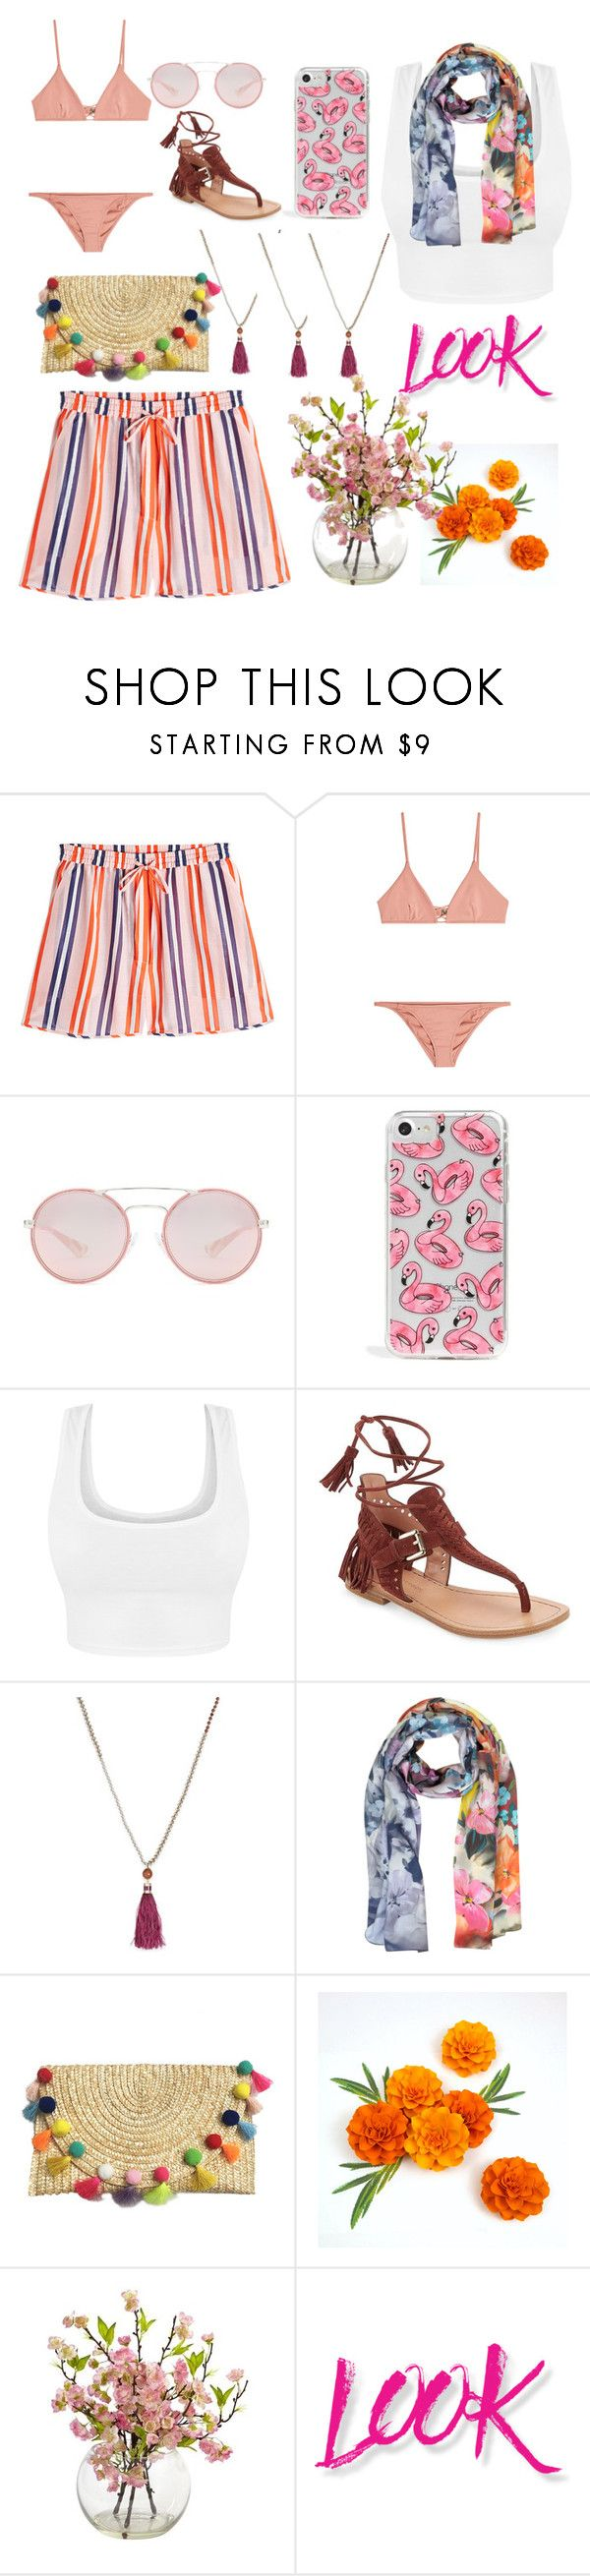 """""""in the summer"""" by nadialestari99 ❤ liked on Polyvore featuring Diane Von Furstenberg, Melissa Odabash, Prada, Skinnydip, Sigerson Morrison, Kate Spade, Laura Biagiotti and NYX"""